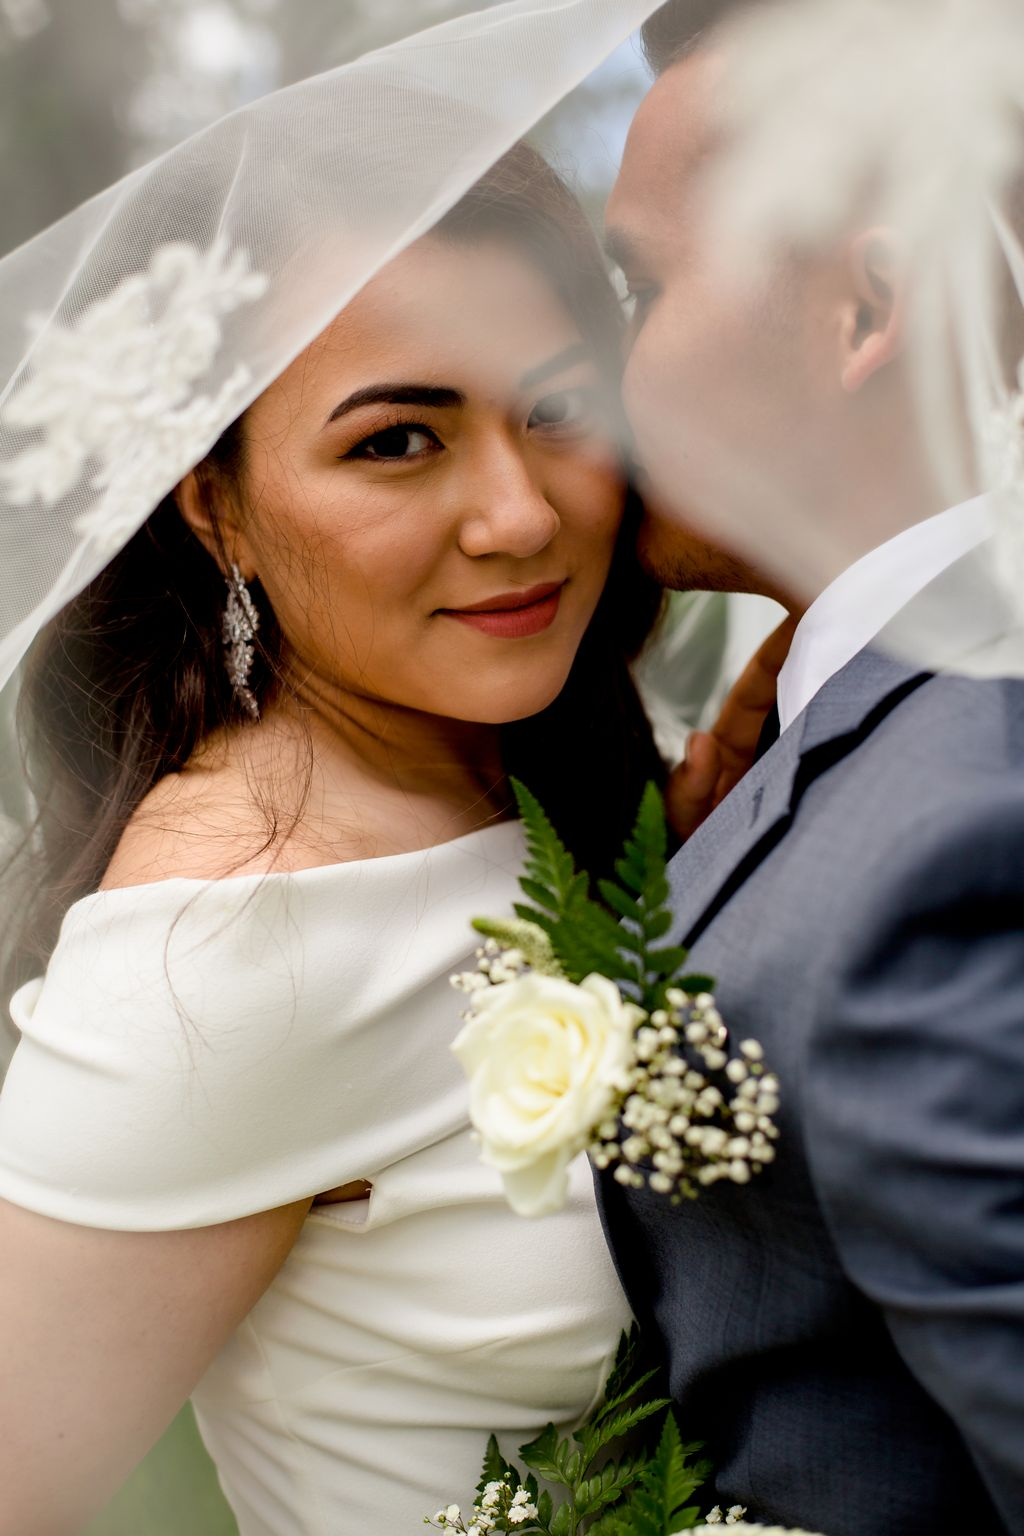 Couples - Engagements, Weddings, and Anniversaries